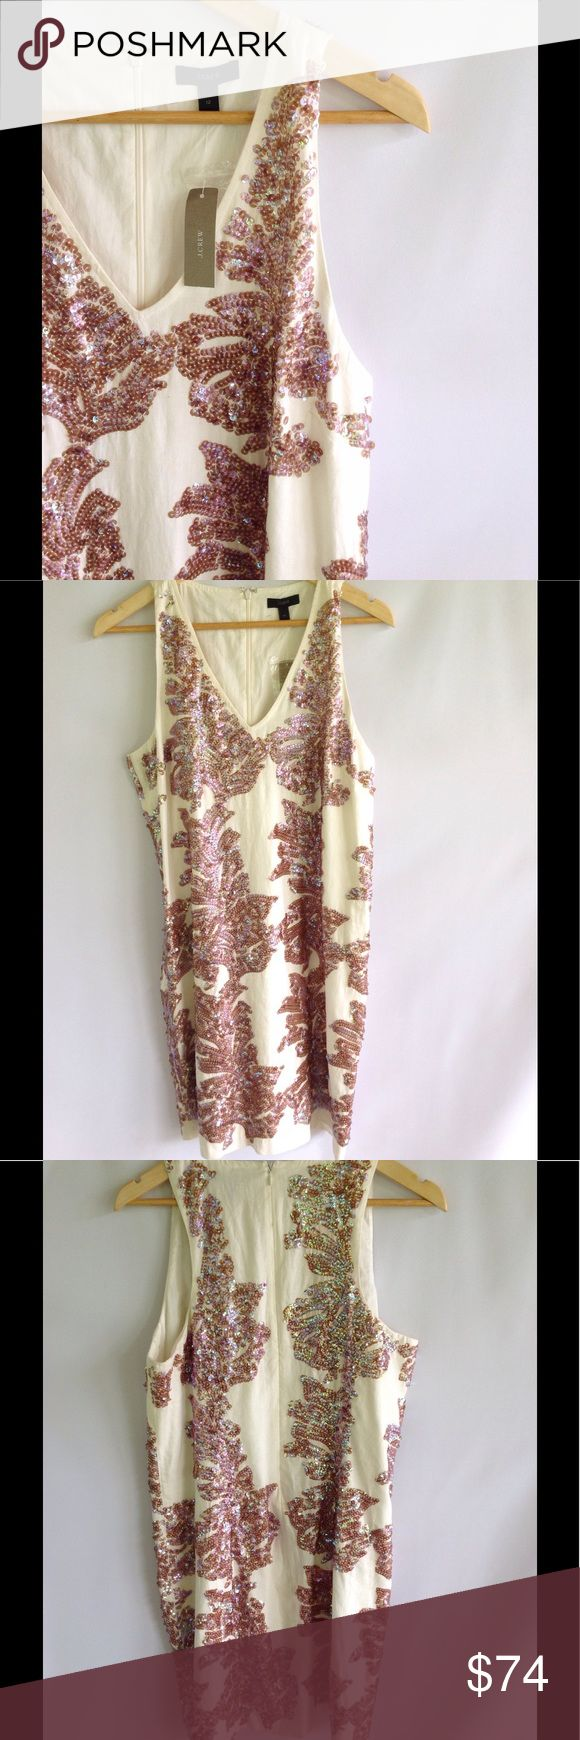 J Crew Cream Sequin Dress NWT Gorgeous sequin dress! New with tags!! Has small mark on back, very faint. Shown in last pic. Excellent condition! J. Crew Dresses